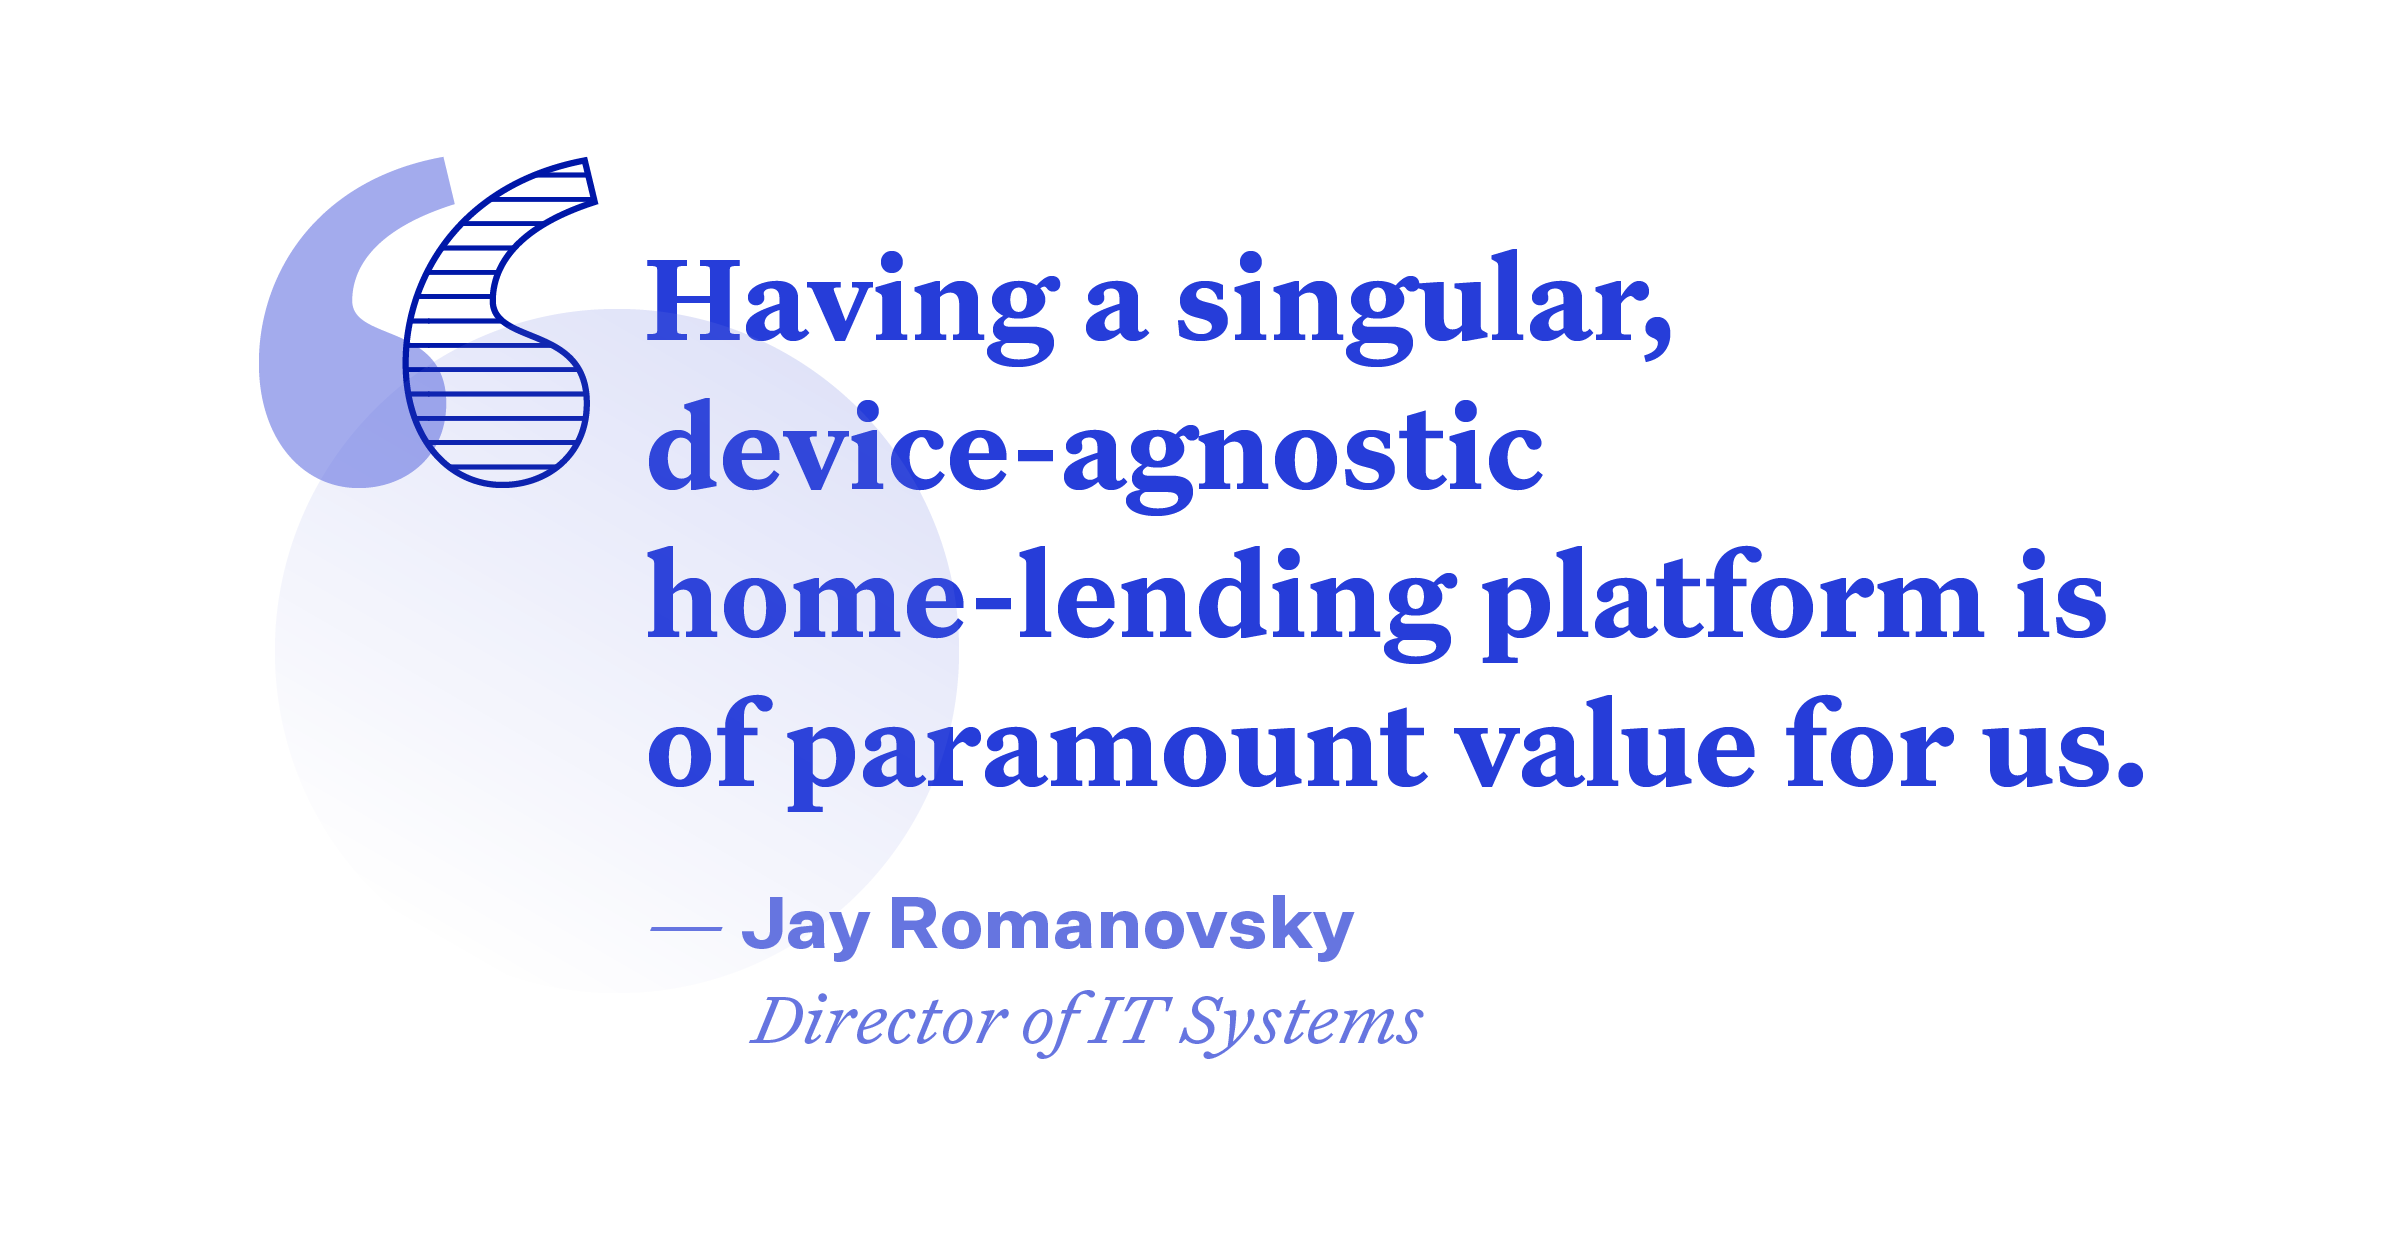 """Pullquote: """"Having a singular, device-agnostic home-lendign platform is of paramount value for us."""""""